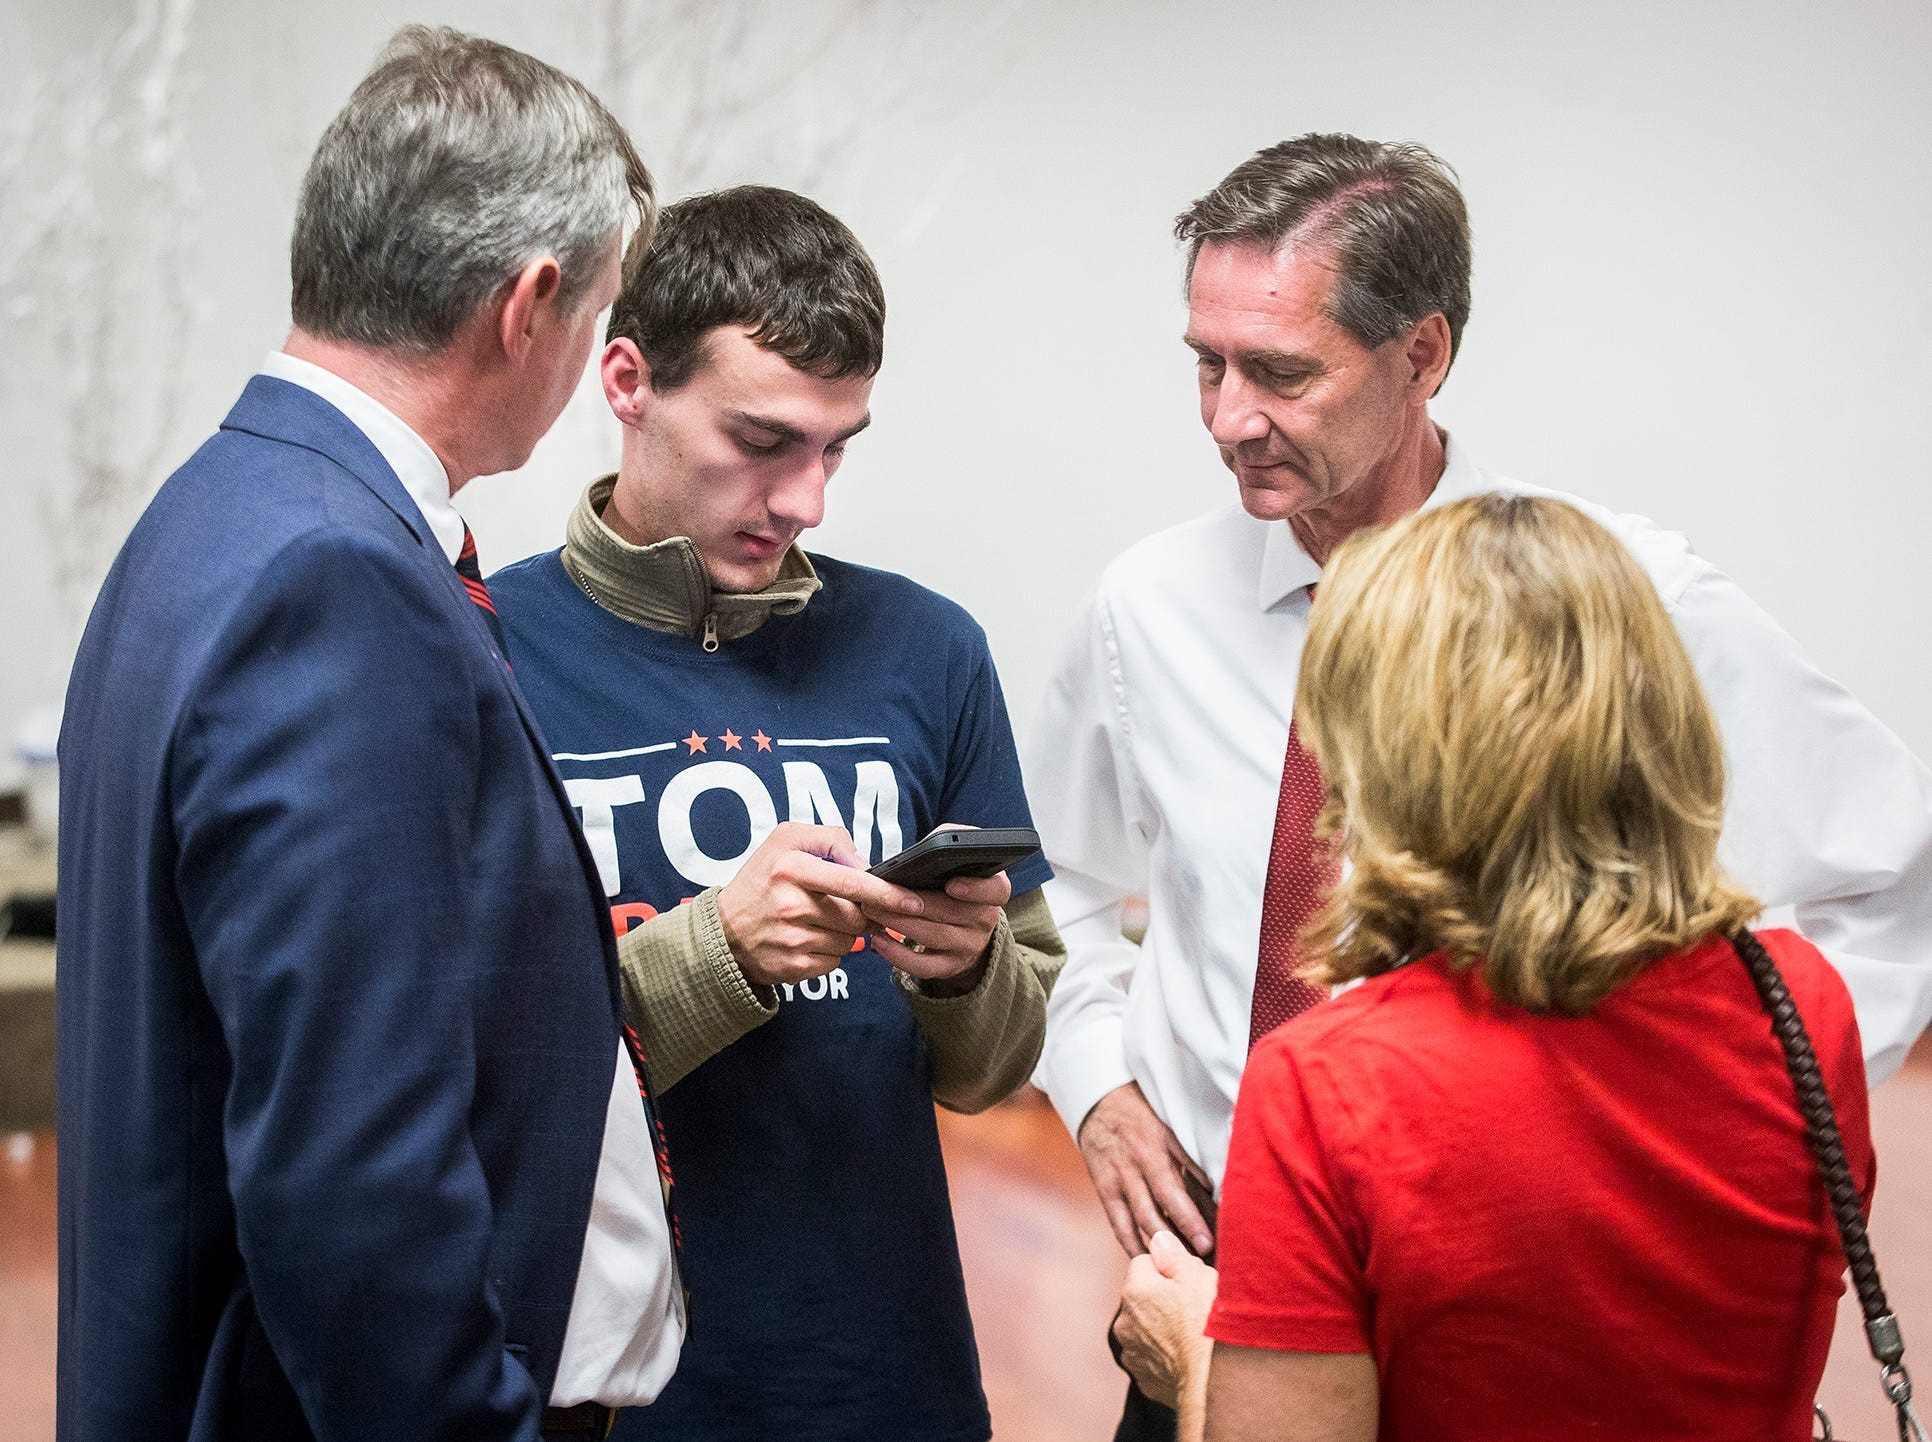 Tom Bracken and Dan Ridenour check election results at Knights of Columbus Tuesday night.